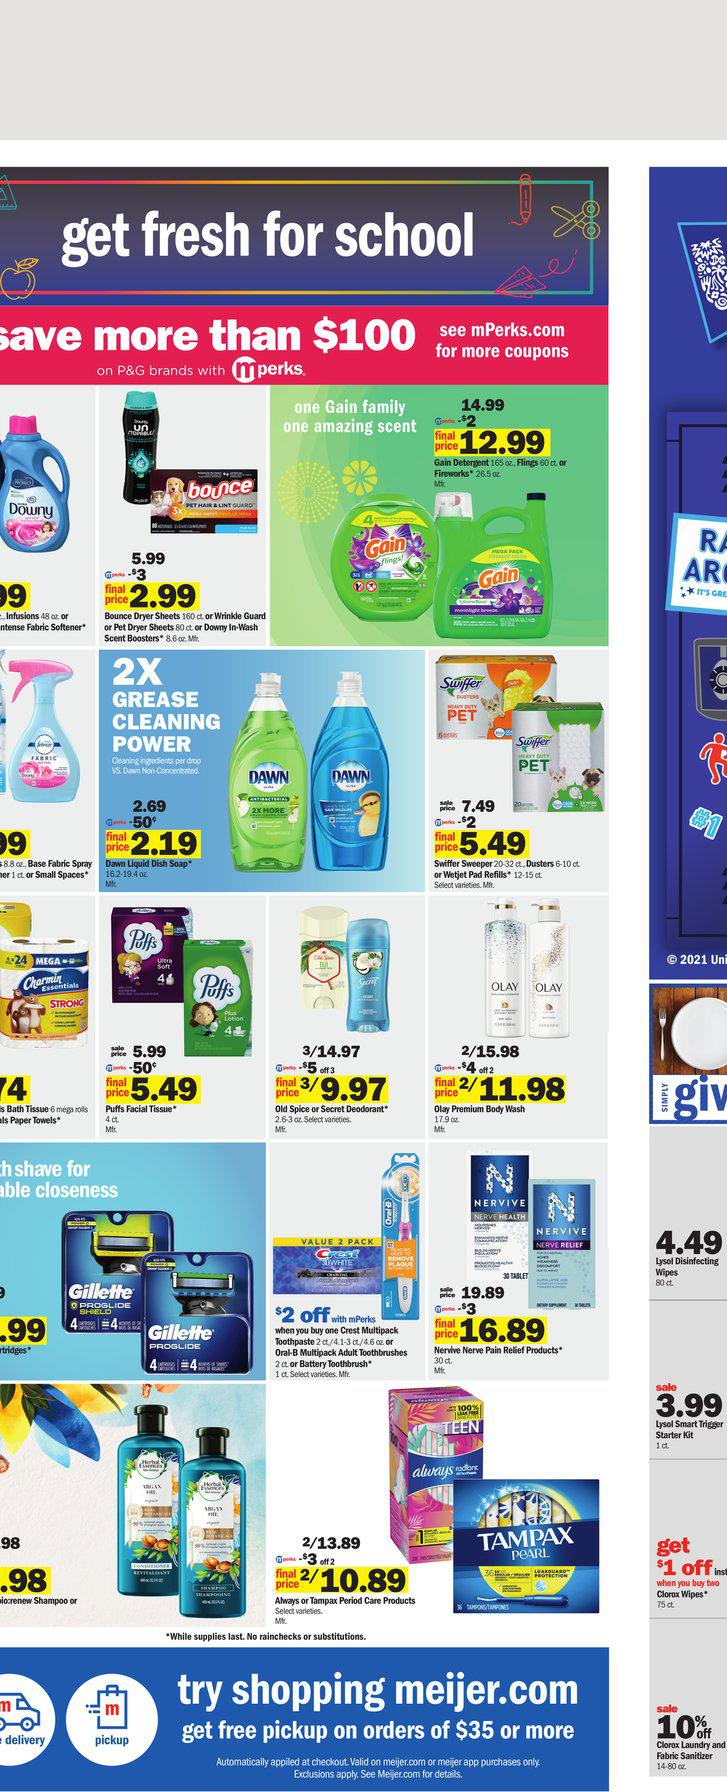 01.08.2021 Meijer ad 19. page